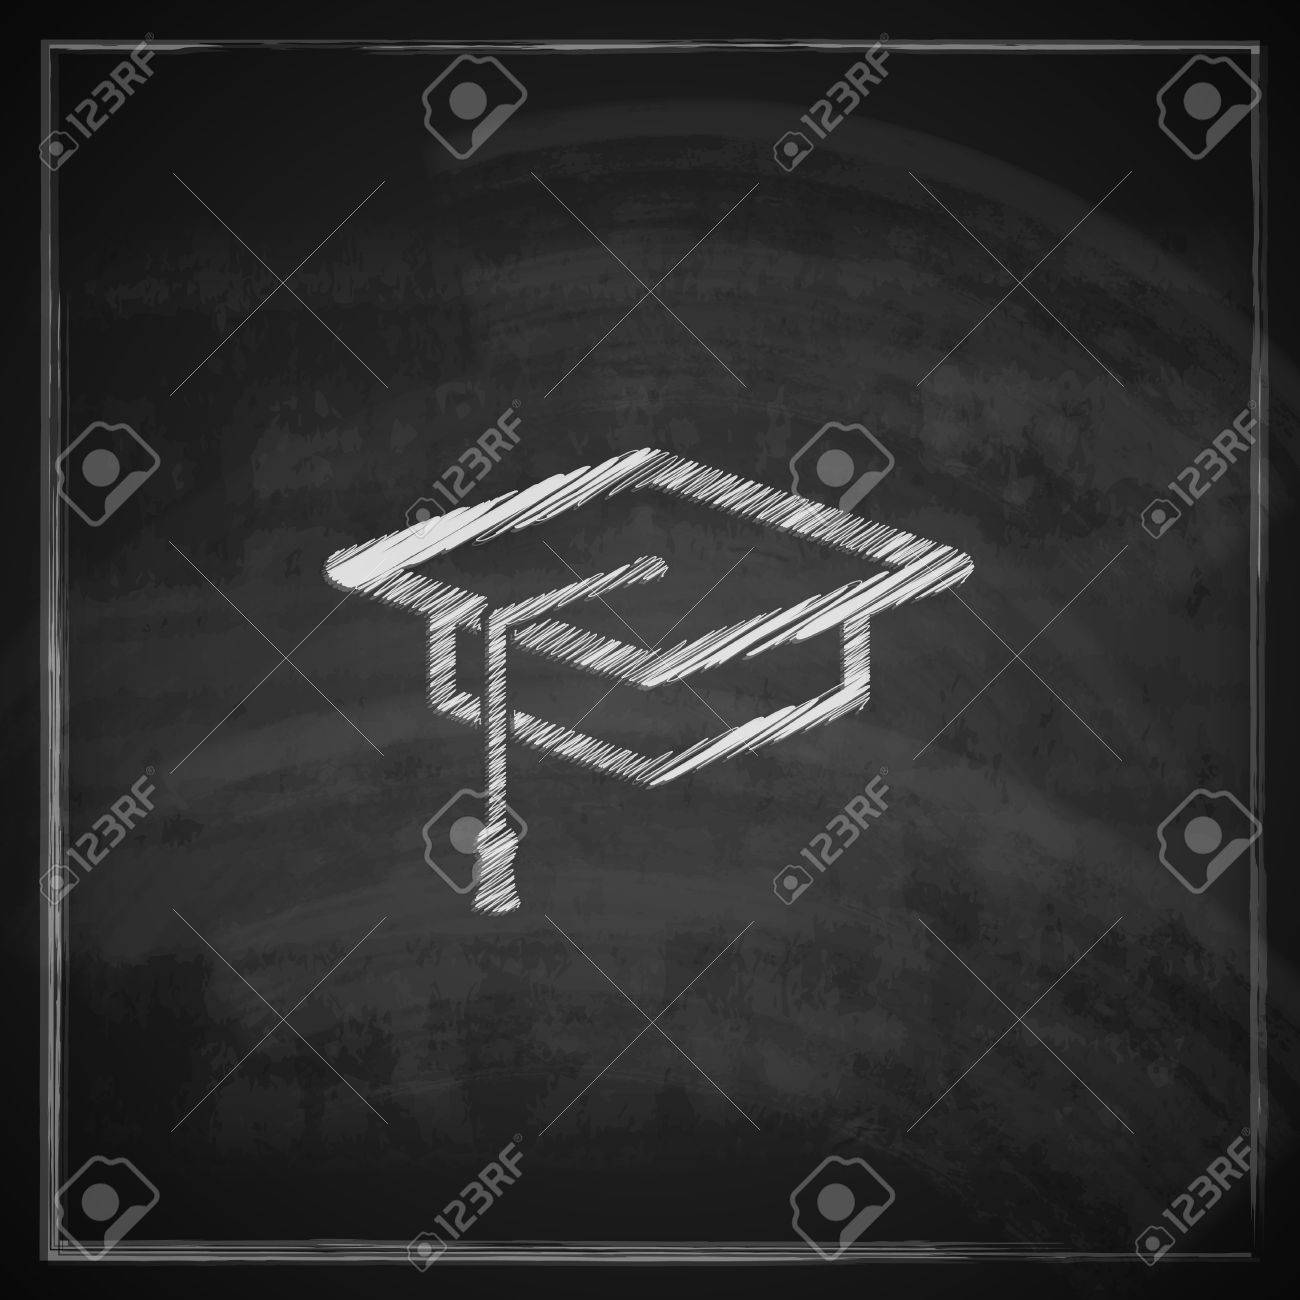 Vector - vintage illustration with graduation cap sign on blackboard  background educational concept 9ee7d6b4c81